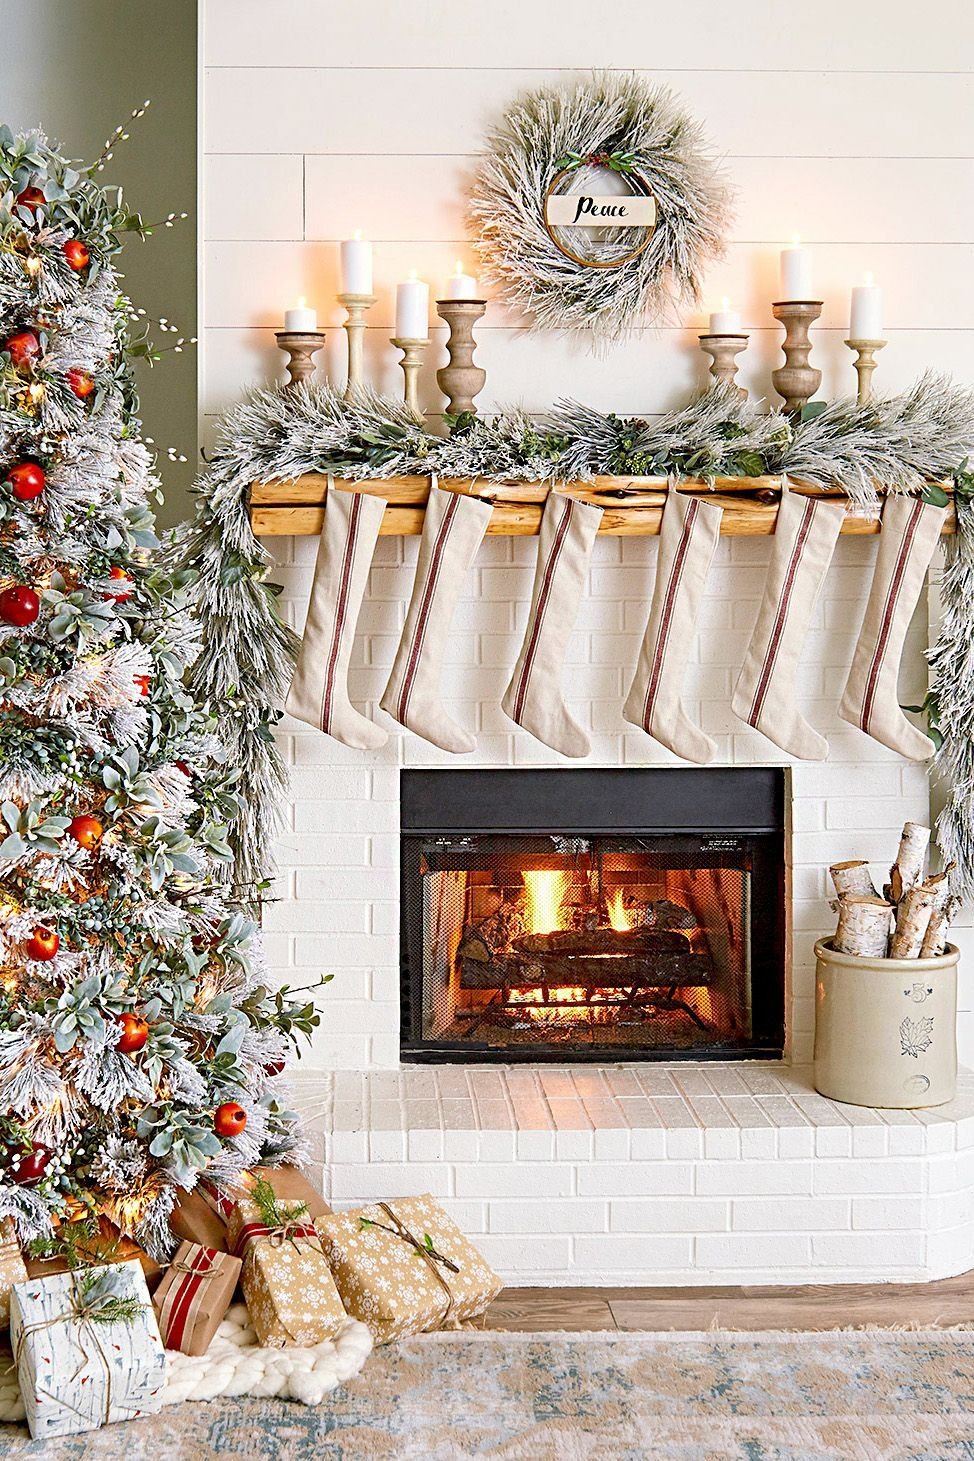 These Christmas decorating ideas will have your living room overflowing with cheer, whatever your decorating style. From mantel decorations, and Christmas tree ideas, to ways to incorporate your own home style into your Christmas décor theme, this gallery has plenty of Christmas decoration inspiration. #christmasdecorideasforlivingroom #christmasdecorations #holidaydecor #holidayideas #christmastree #bhg